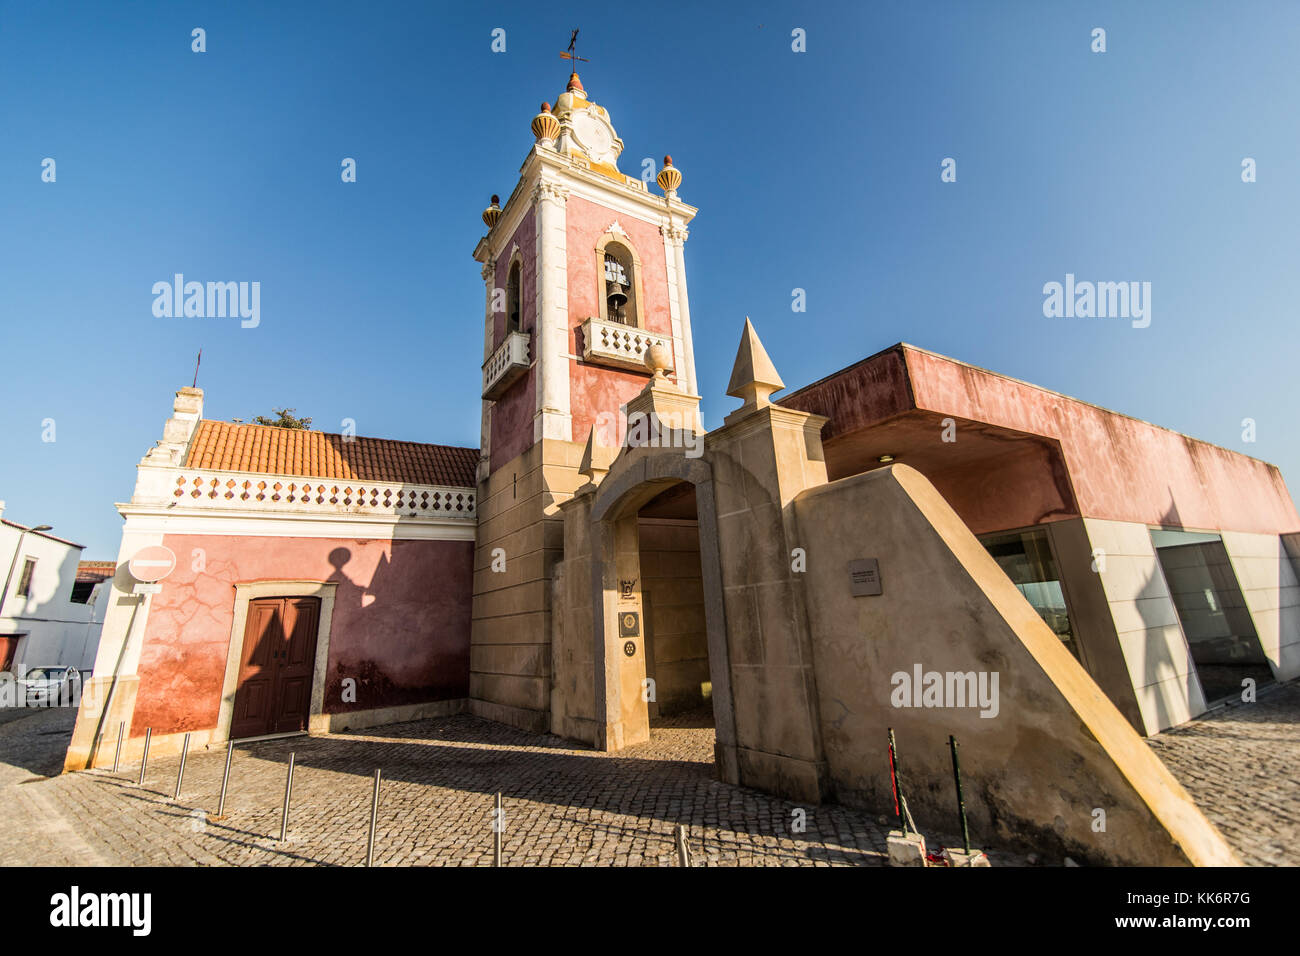 Estoi, Portugal - July, 2017: Estoi Palace and garden Estoi Algarve Portugal - Stock Image